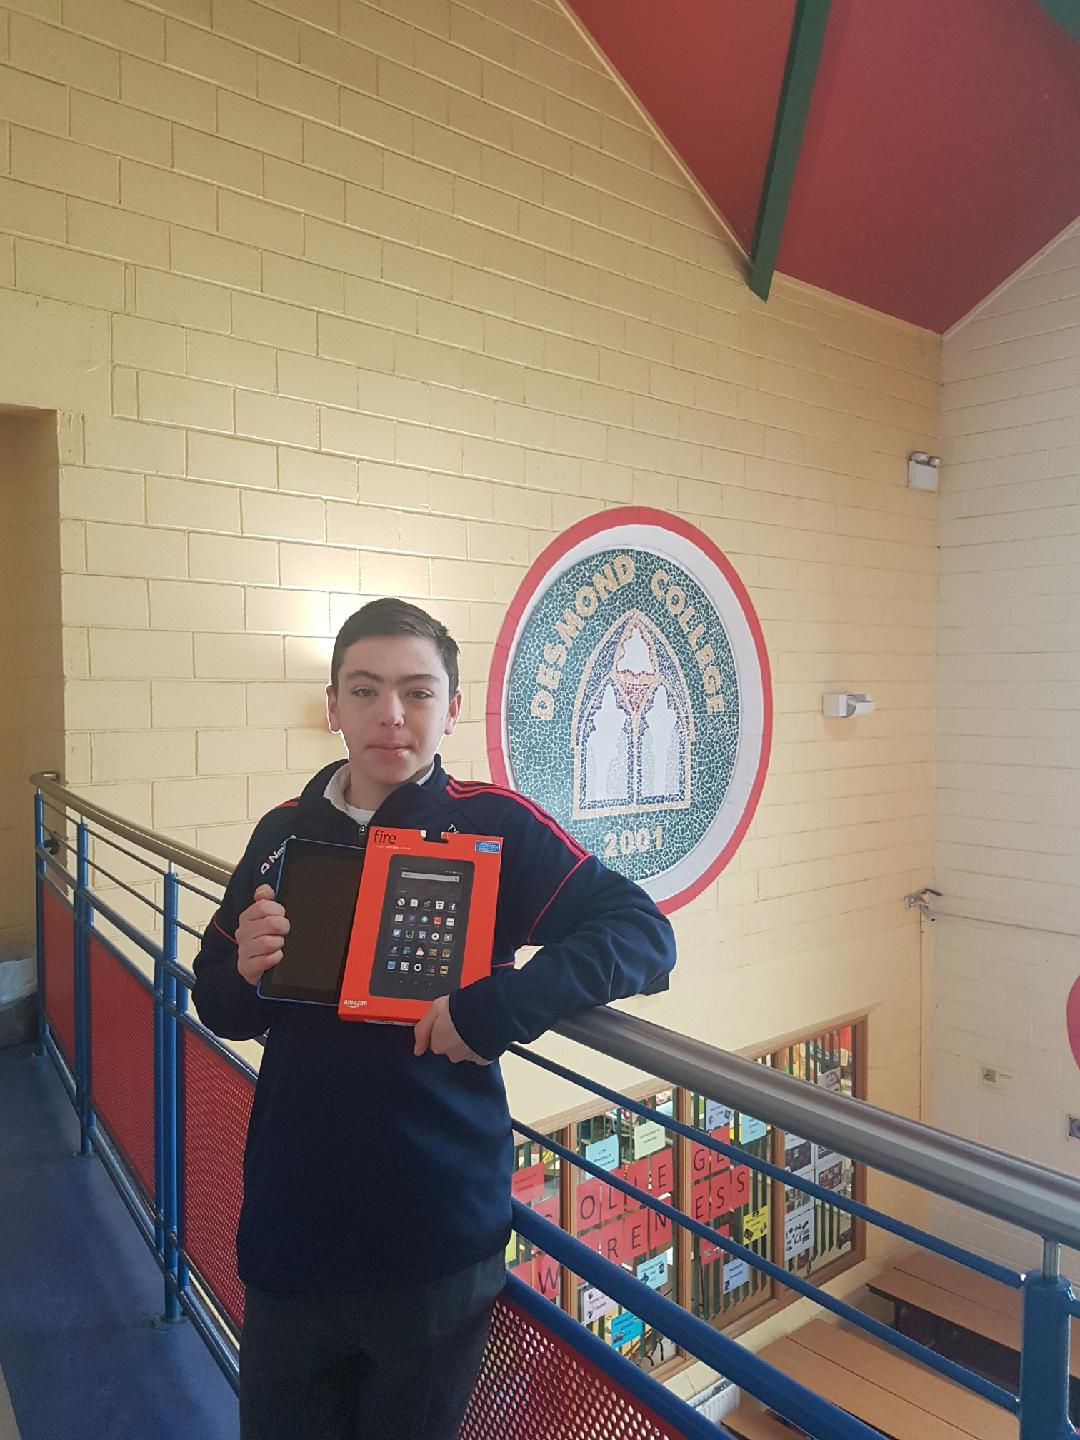 Congratulations to our Desmond College winner of a Tablet in the TY Christmas draw